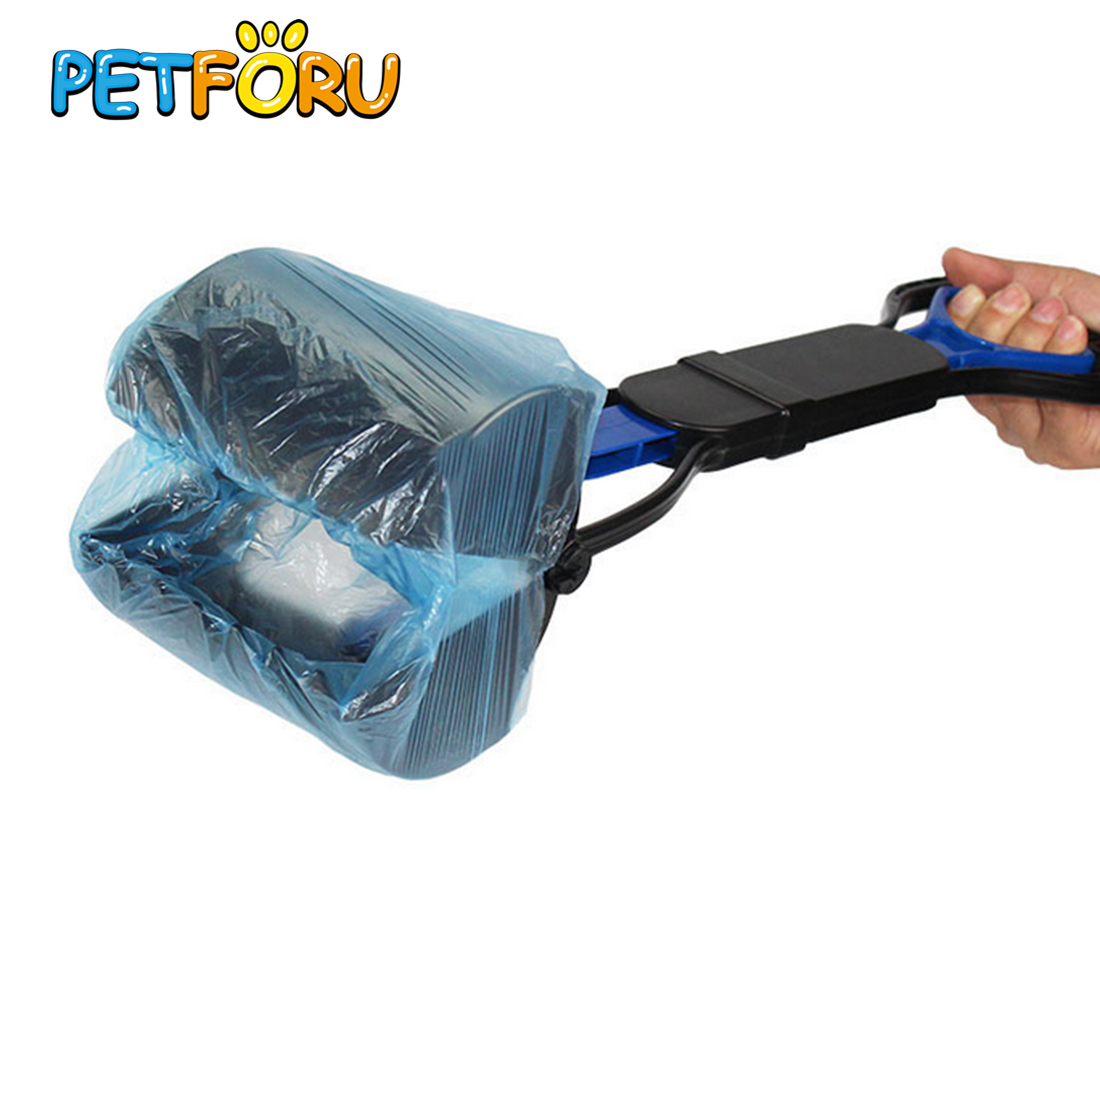 Petforu 5 Rolls Outdoor Pet Dog Waste Poop Bag Portable Puppy Dog Shit Pick Up Cleaning Bags Pets Dogs Trash Cleaning Supplies